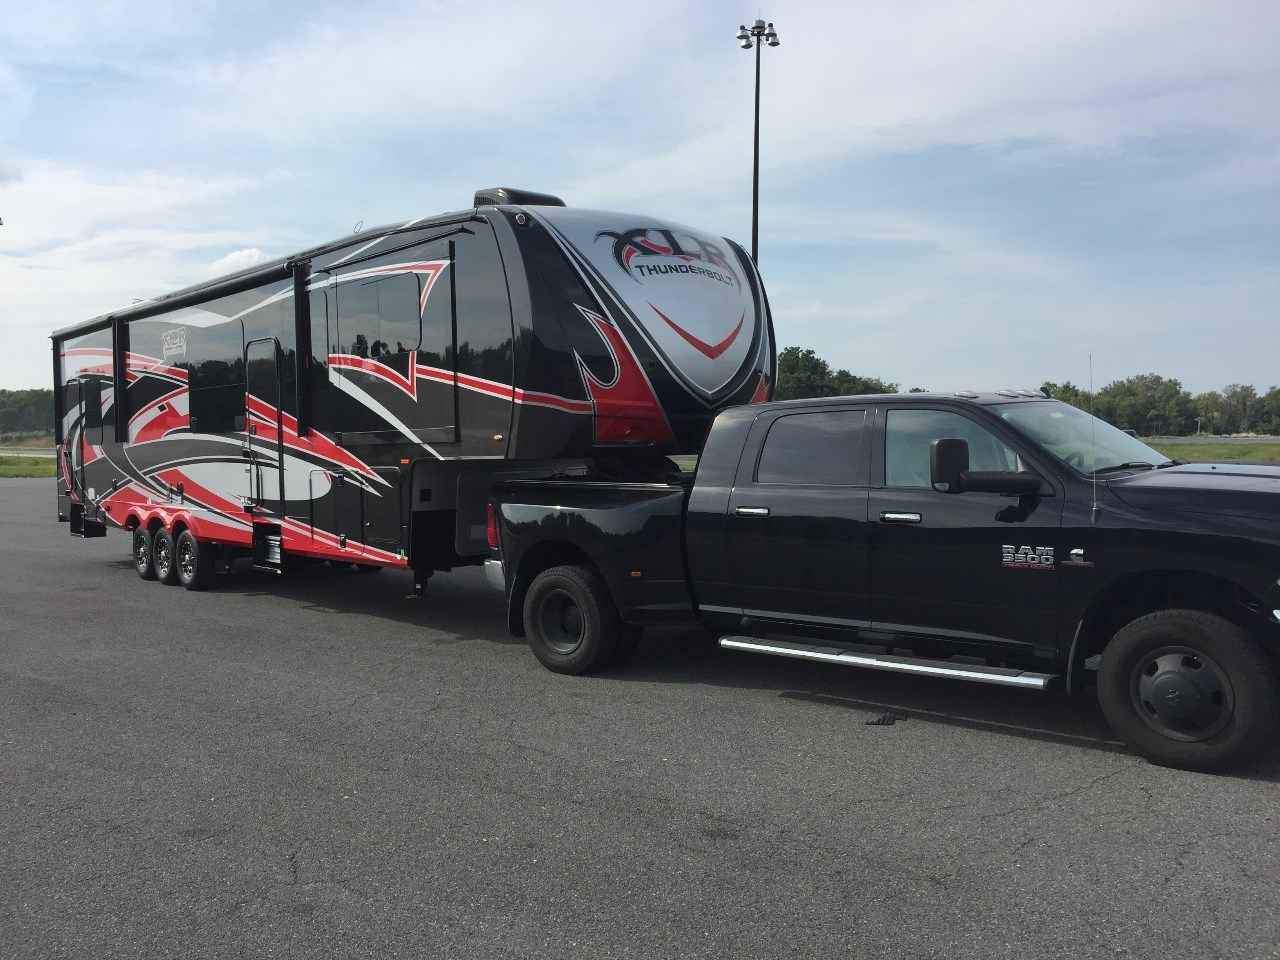 2015 Used Forest River Xlr Thunderbolt 385amp Toy Hauler